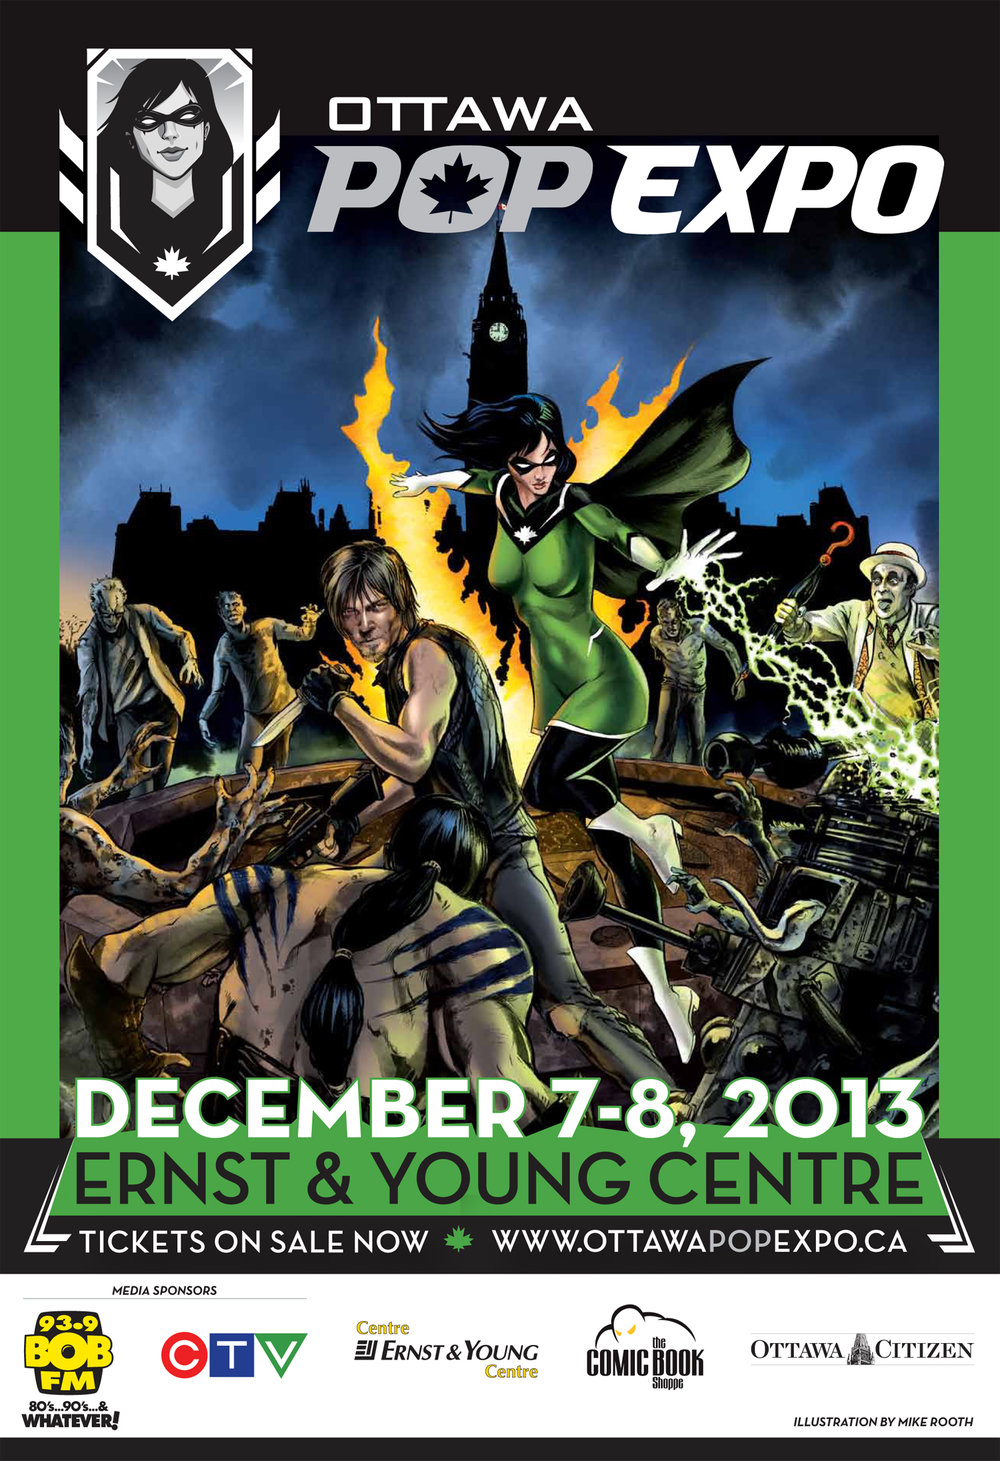 Poster for 2013 Ottawa Pop Expo